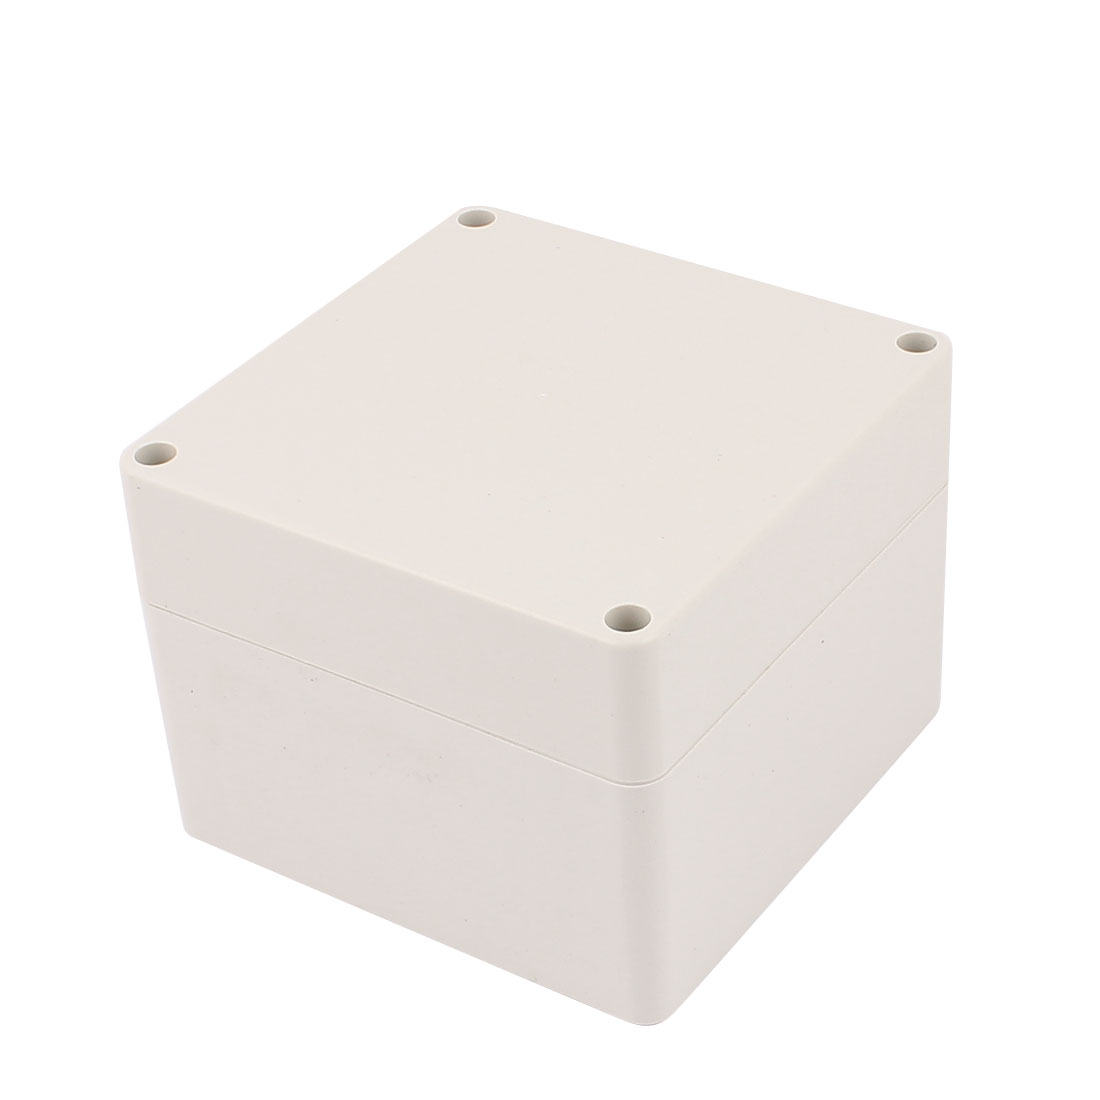 120mm x 120mm x 90mm Rectangular Dustproof IP65 Plastic DIY Junction Box Case